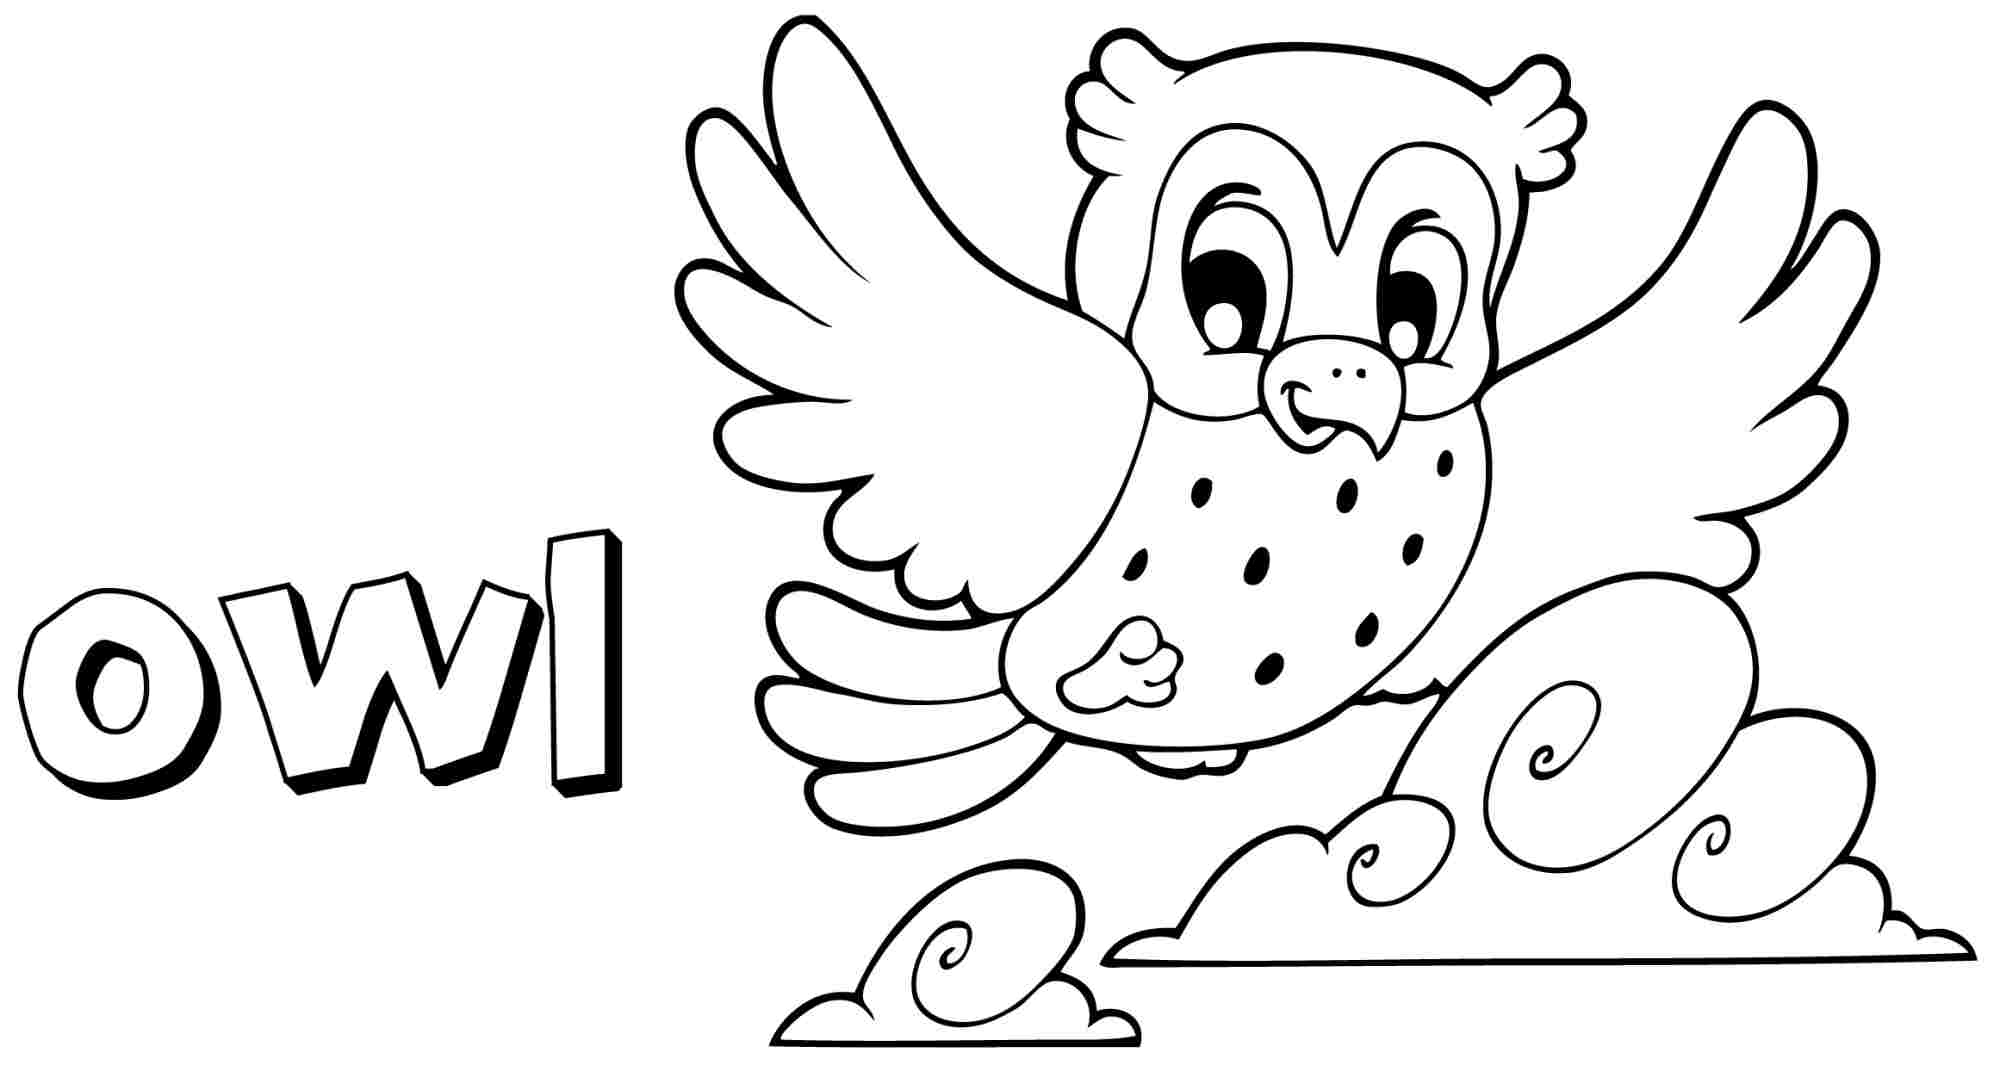 owls coloring pages preschool | Free Owl Preschool Coloring Pages - Coloring Home